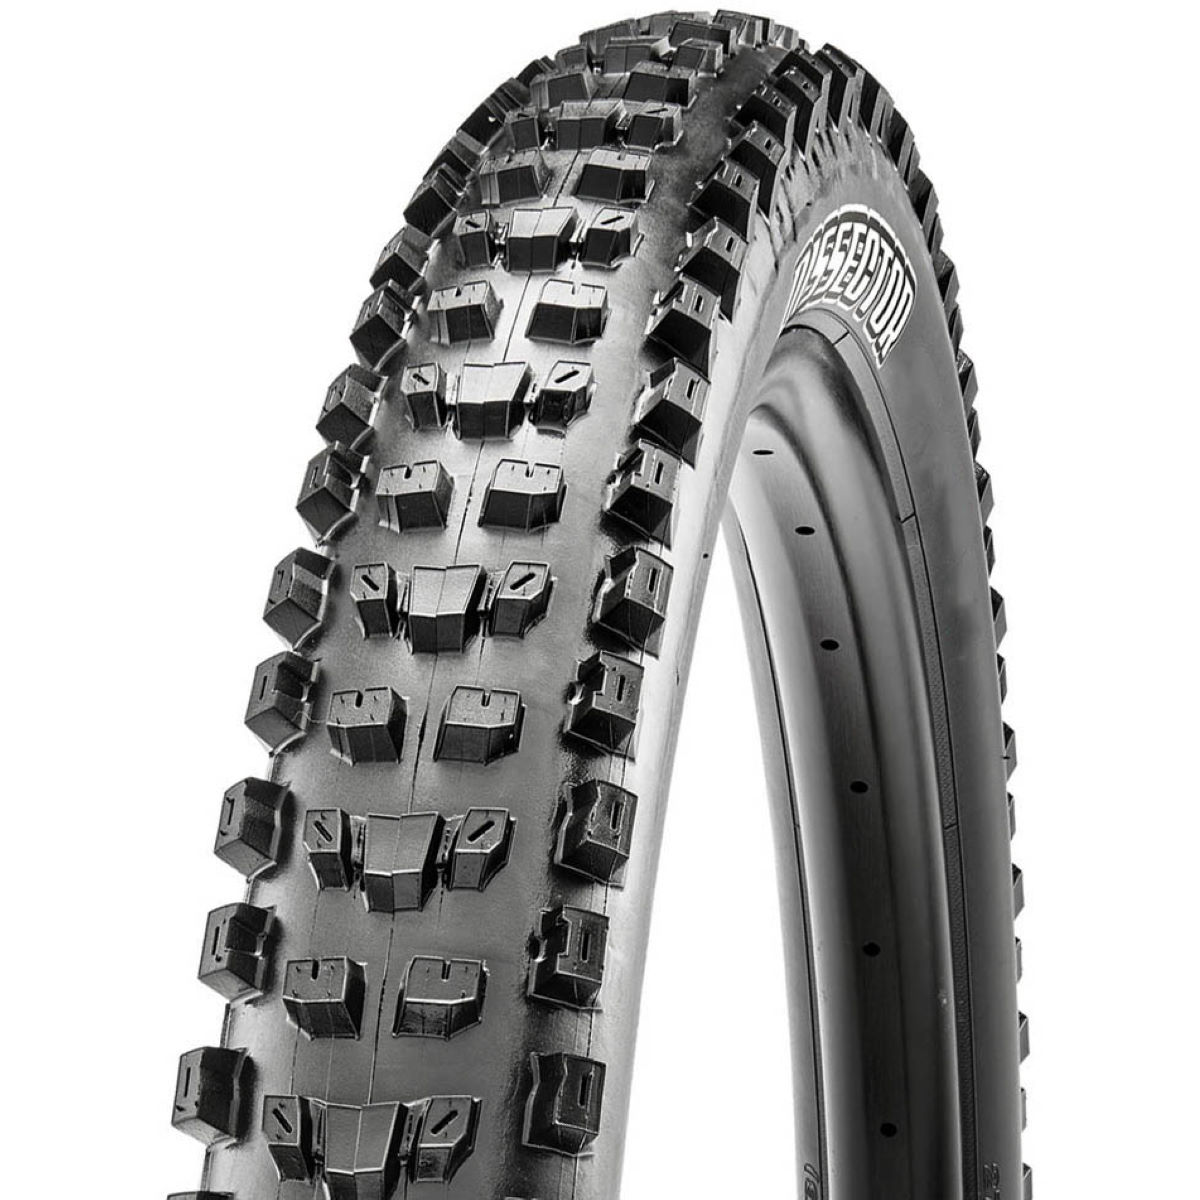 Maxxis Maxxis Dissector MTB Tyre - 3CT - EXO - TR - WT   Tyres